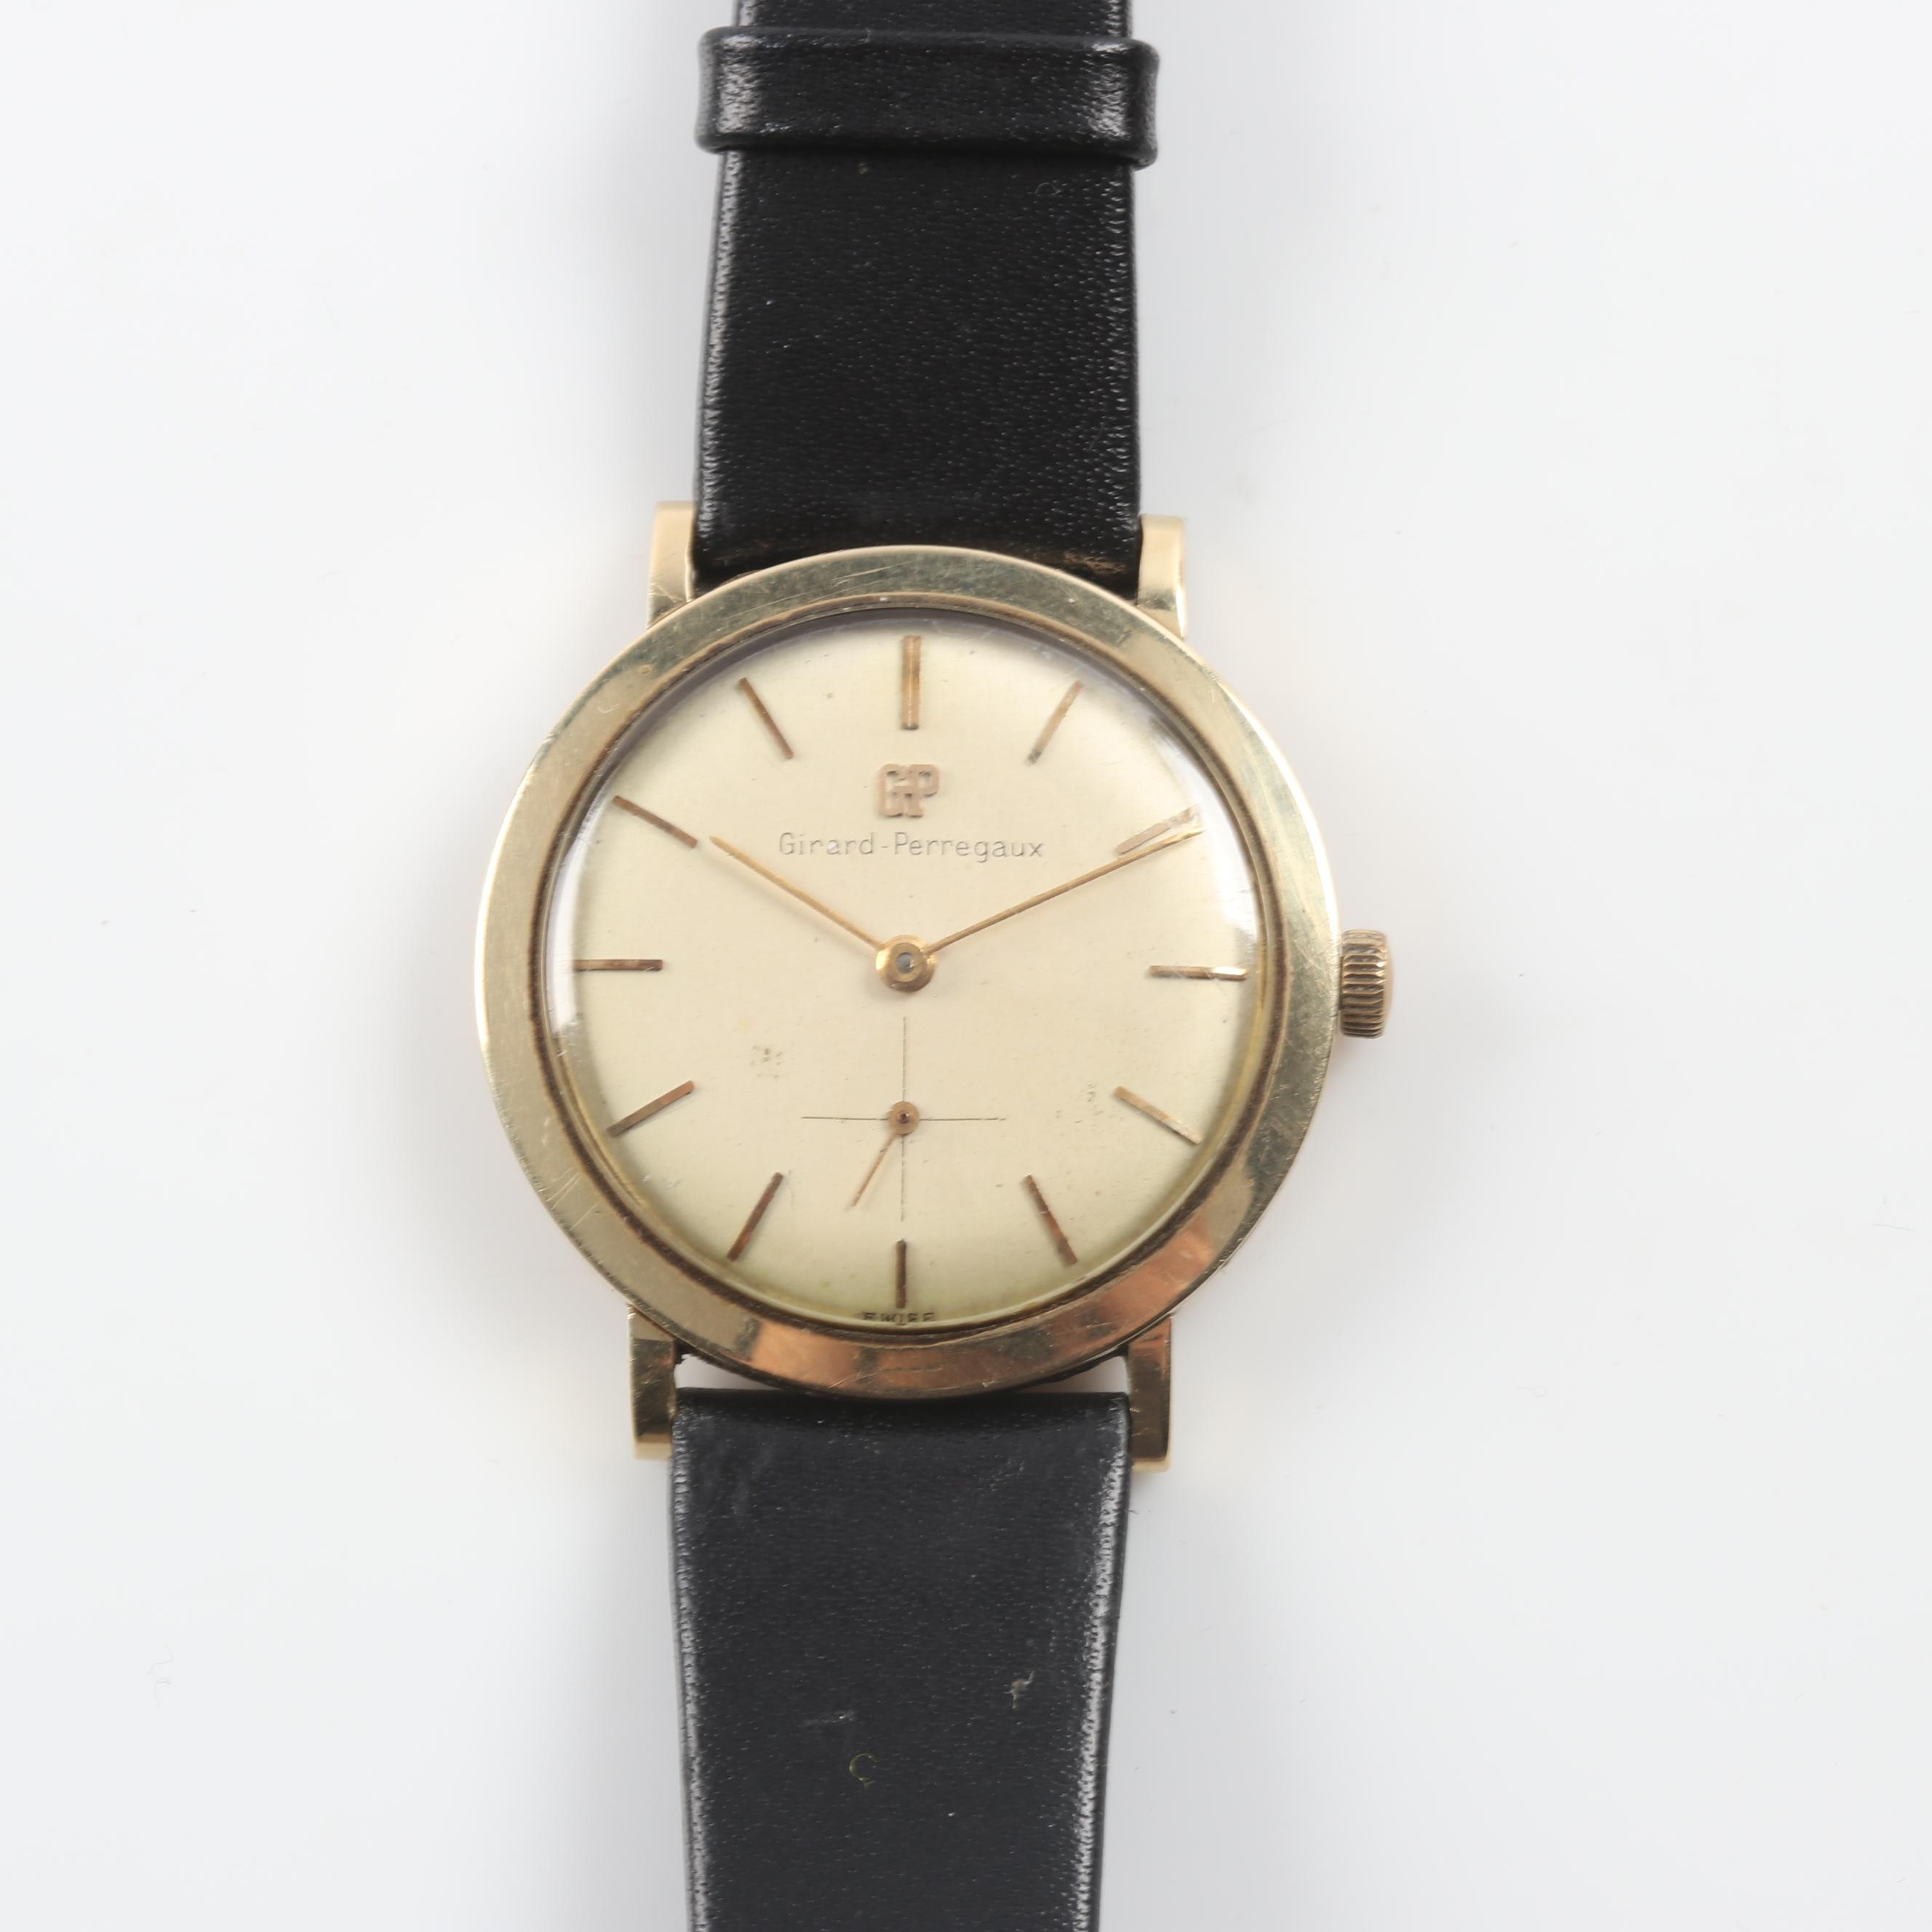 14K Yellow Gold Girard Perregaux Watch